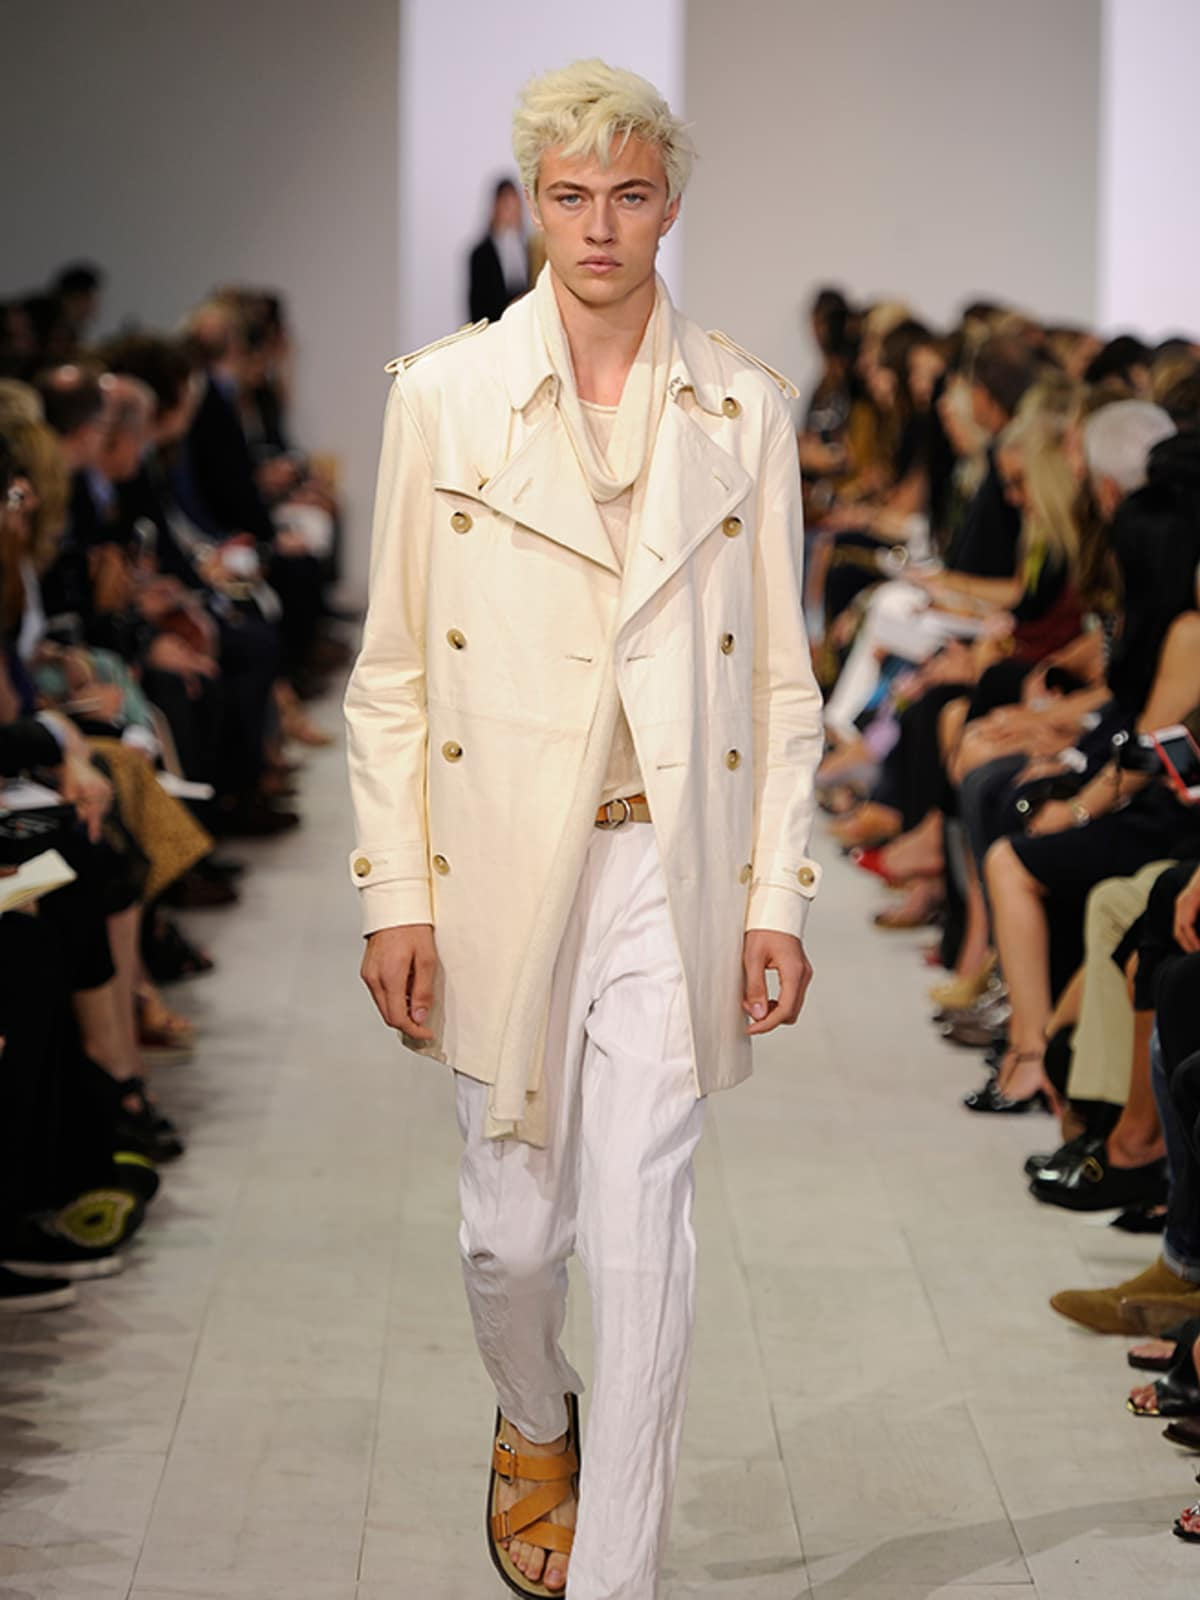 Lucky Blue runway model at Michael Kors show